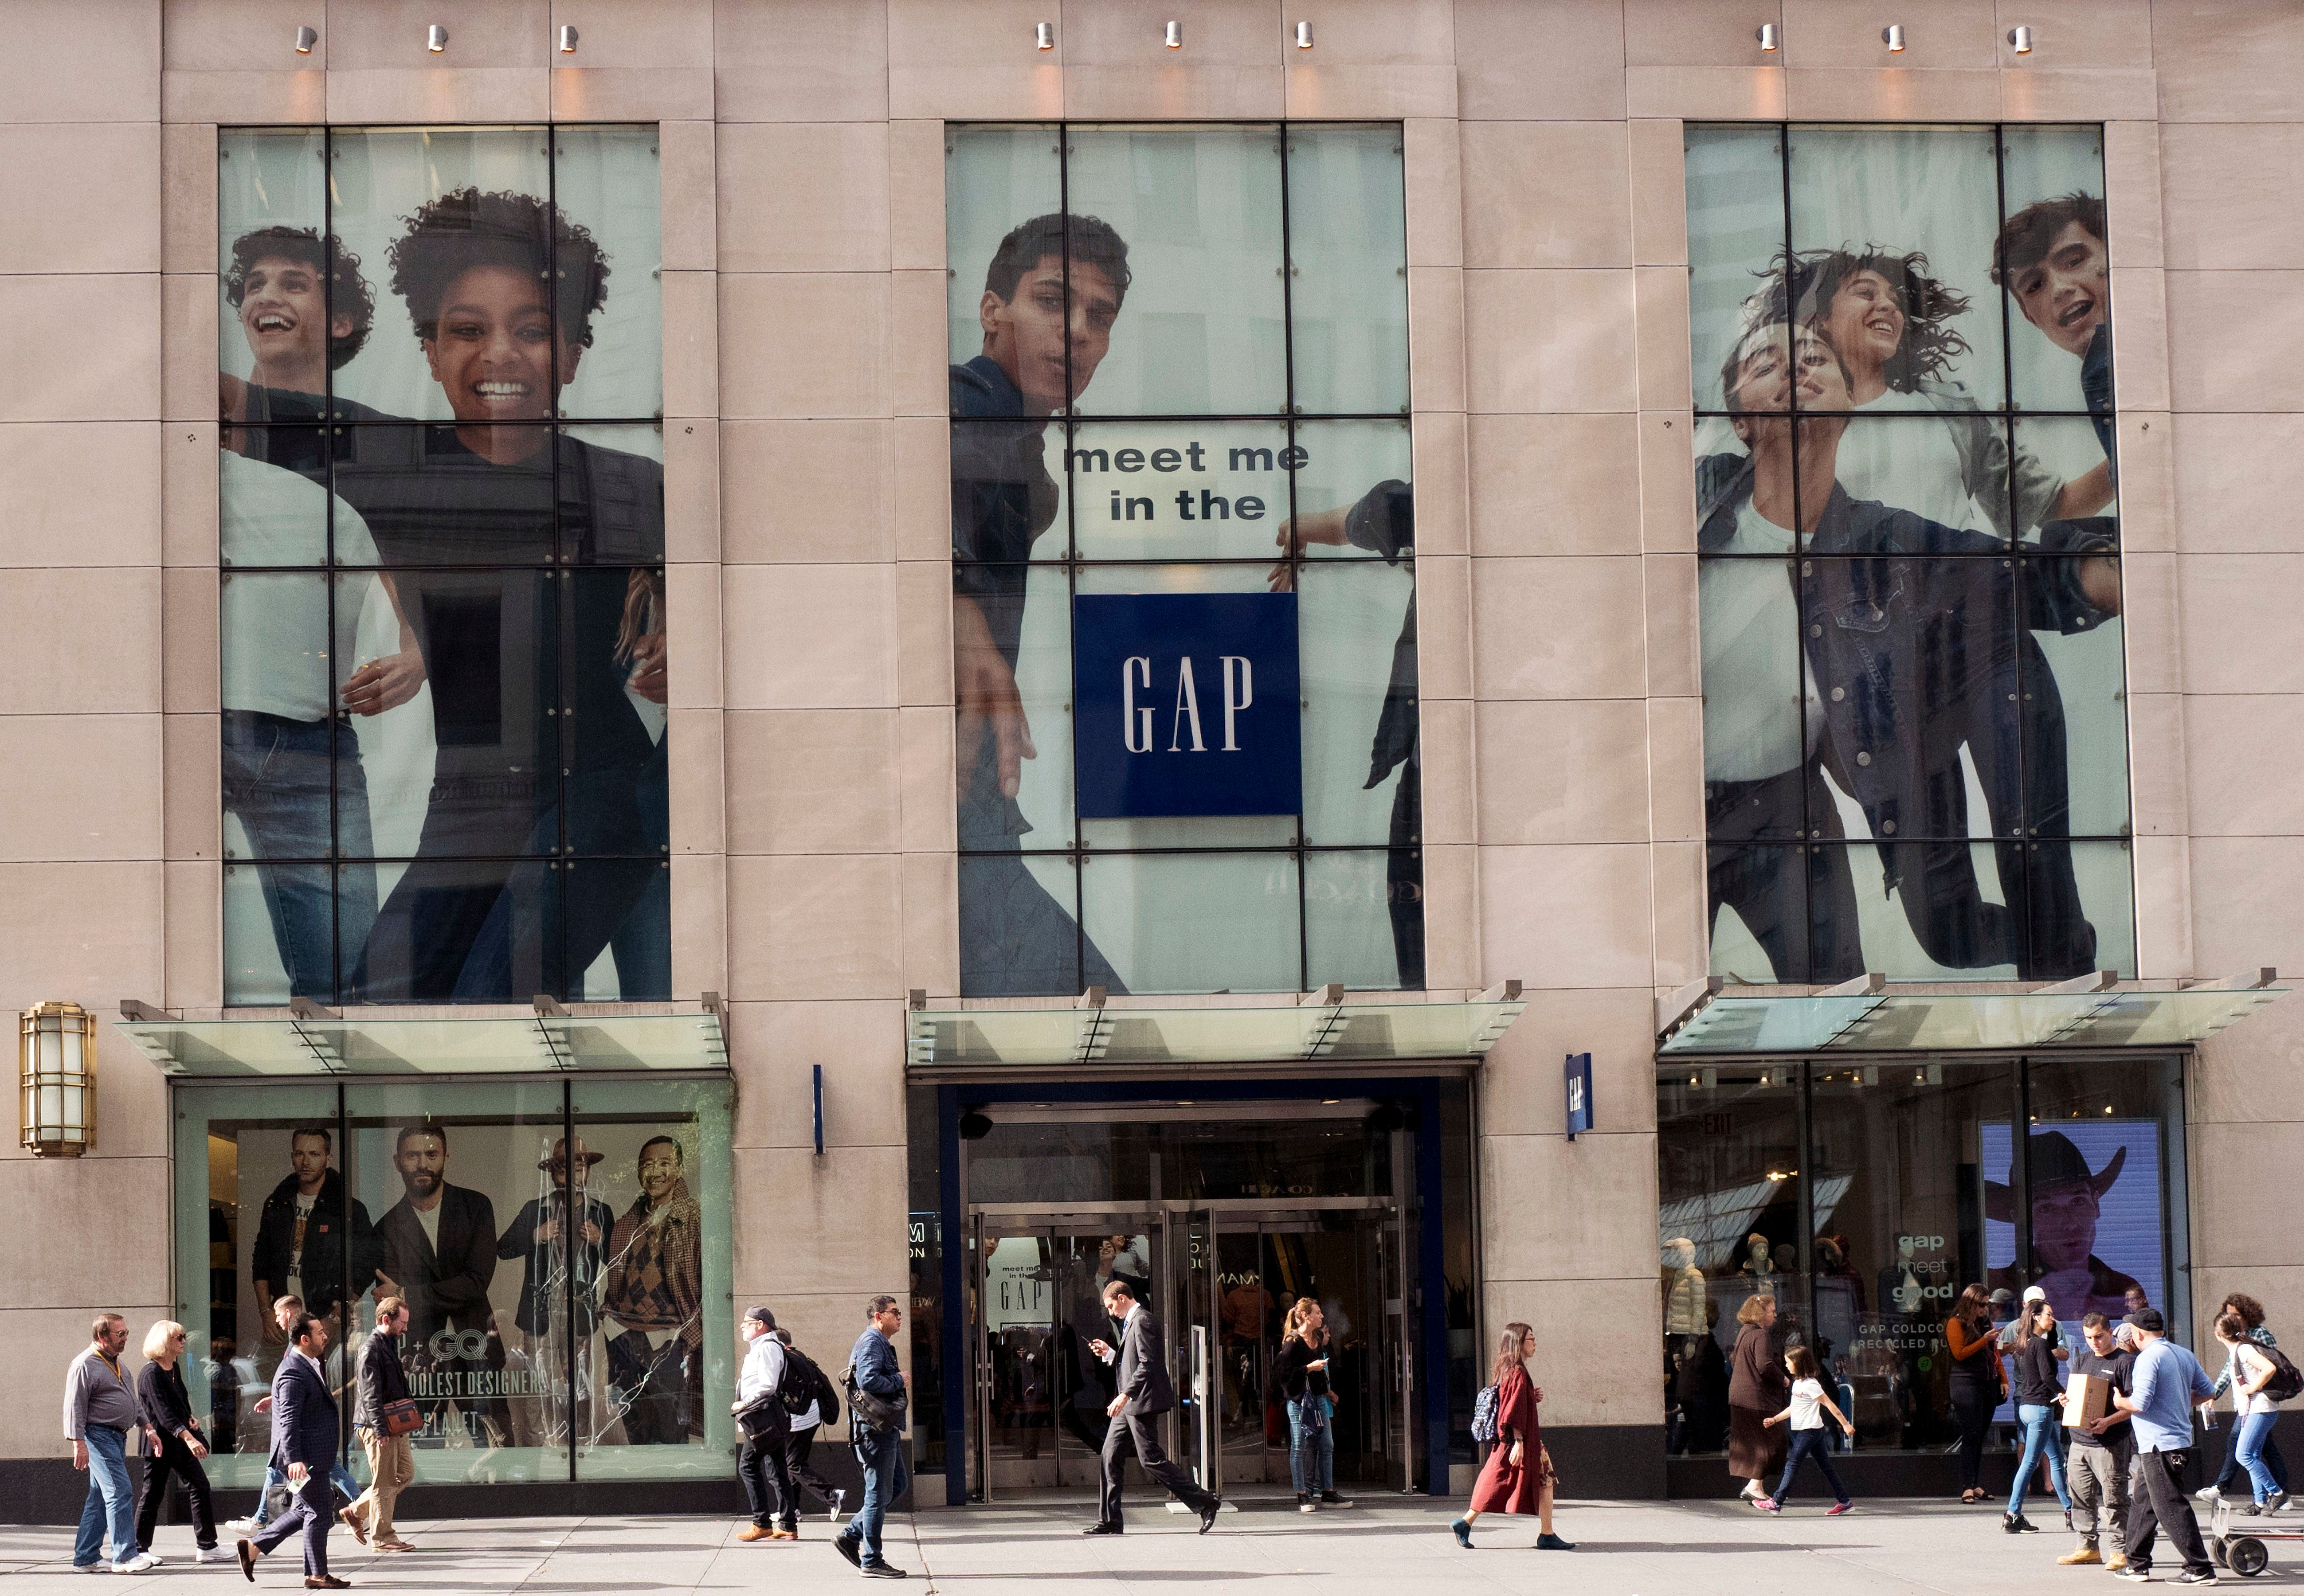 People walk by the advertising for a Gap store on New York's Fifth Avenue. Diversity in the advertising industry is becoming a higher priority for consumer product companies as they try to reach a new generation of customers with evolving sensibilities on ethnicity, age, gender and sexualityDiverse Advertising-Getting it Right, New York, USA - 23 Oct 2017